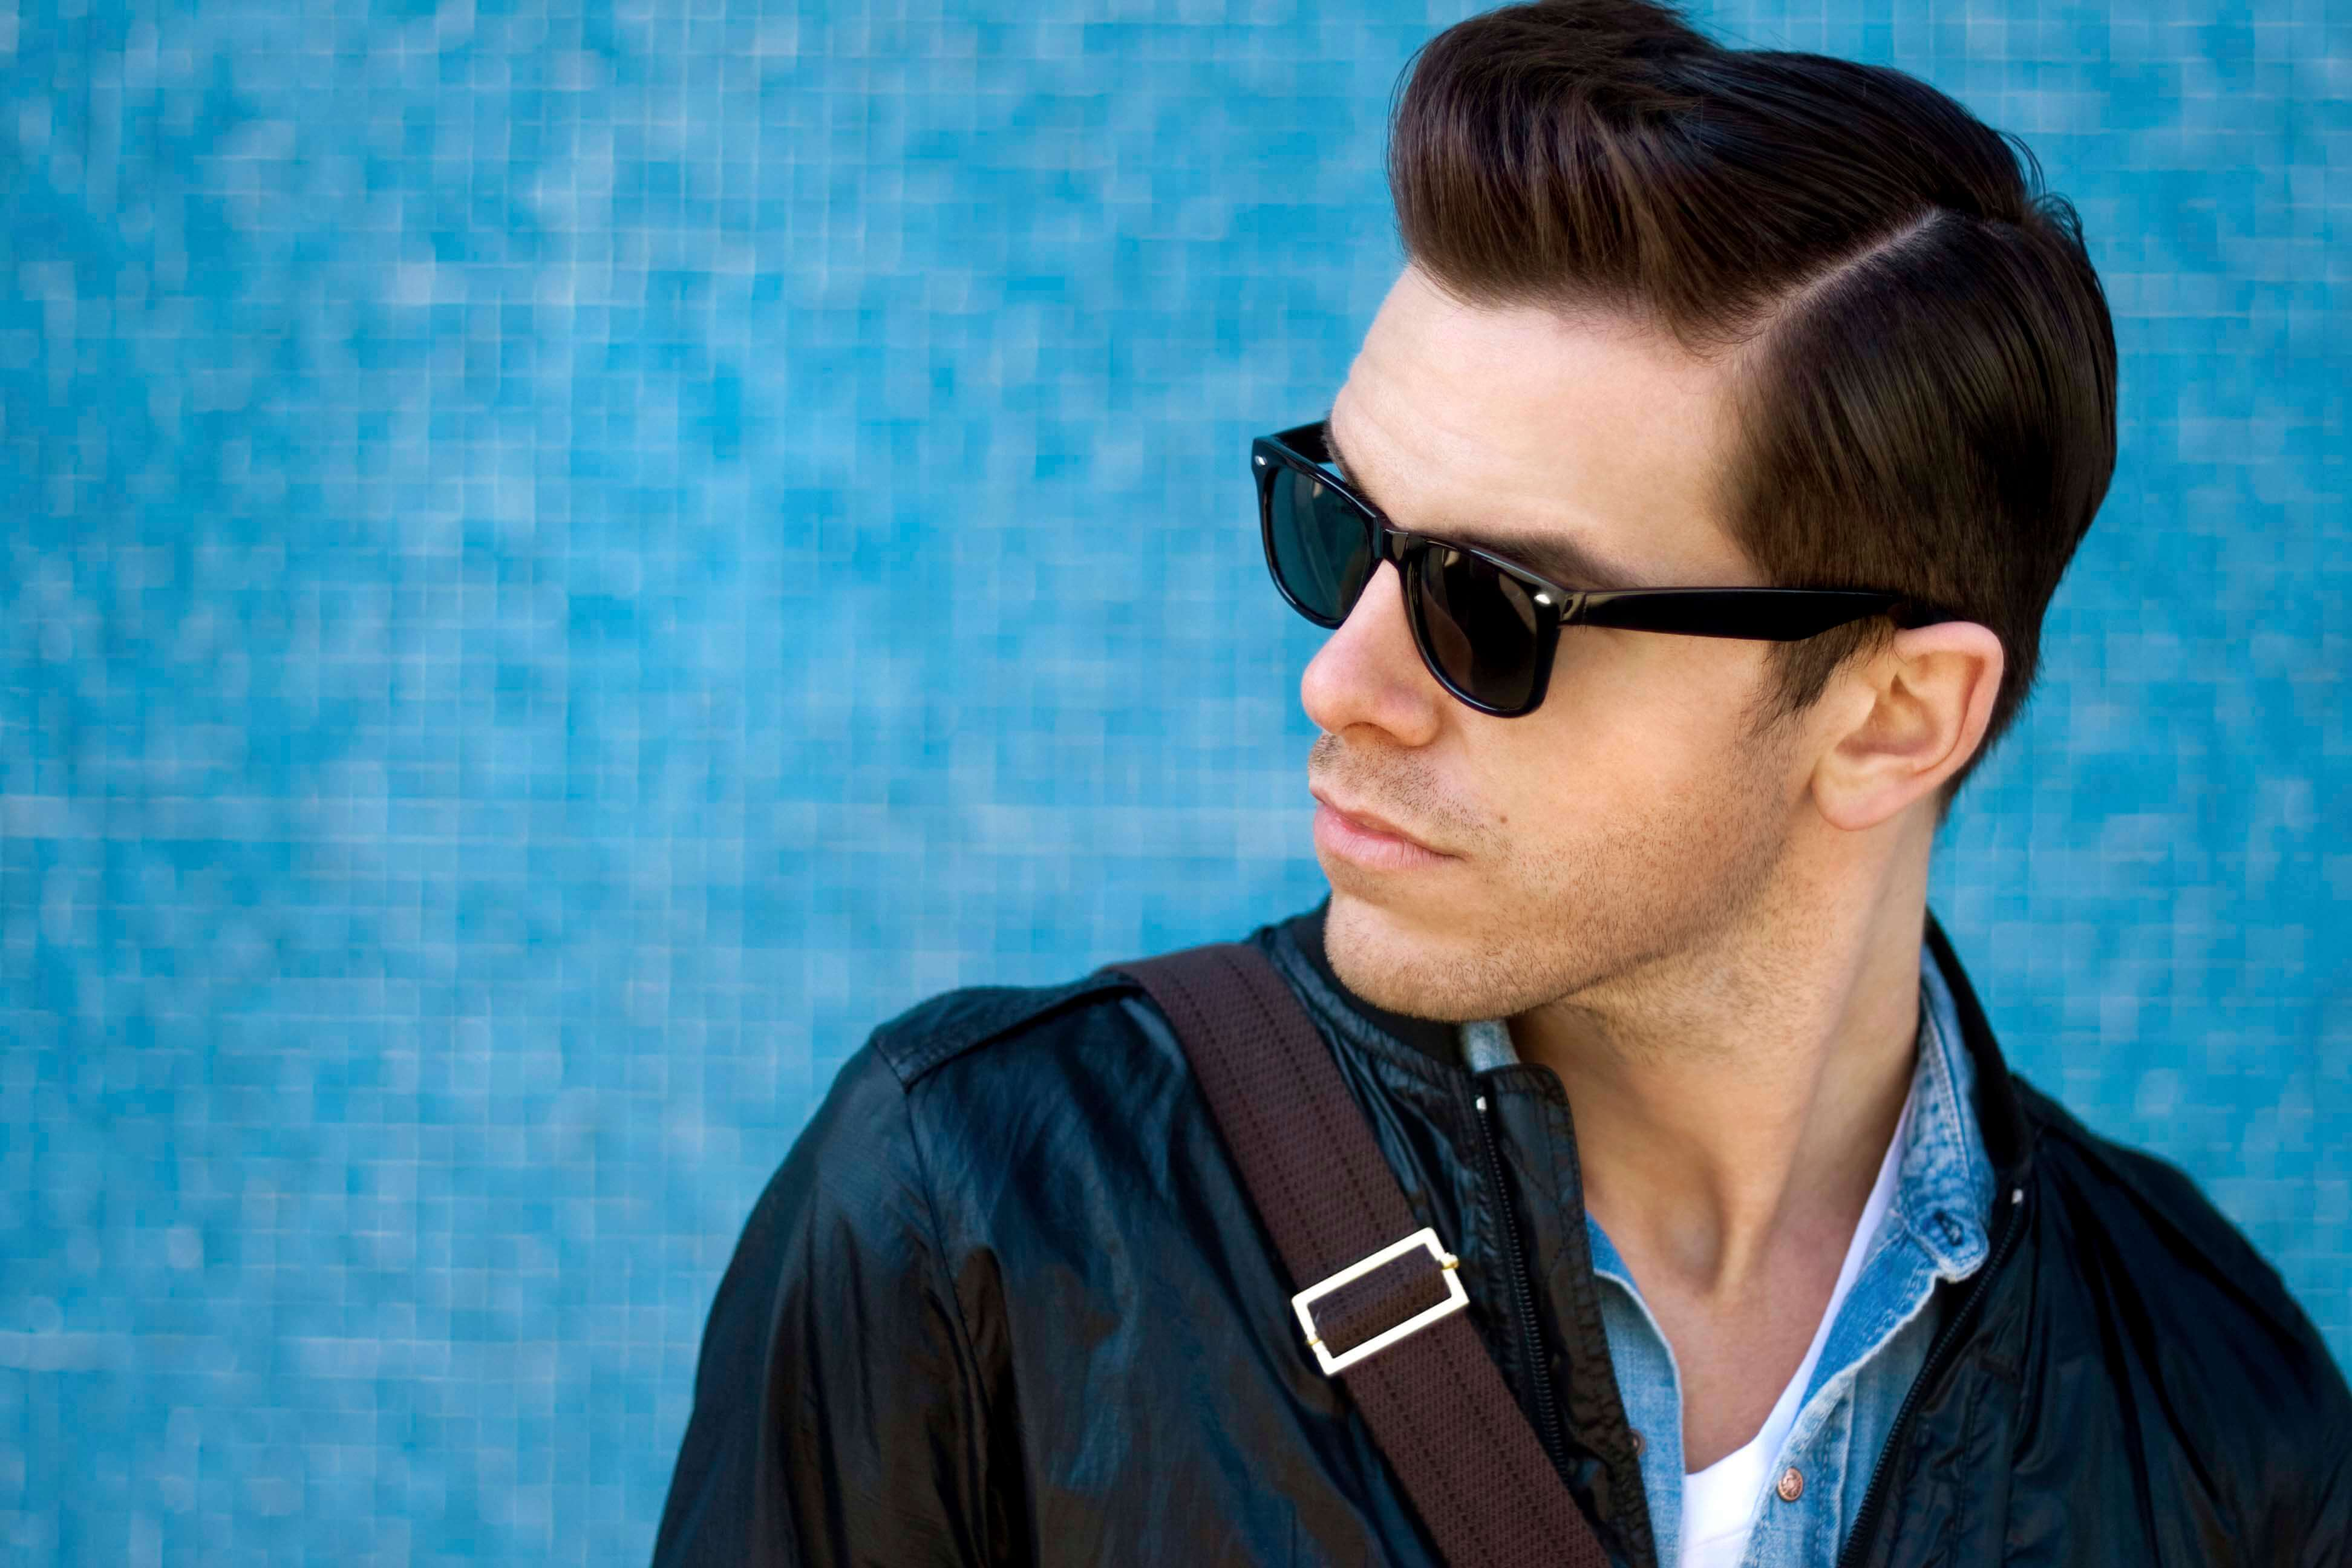 Cool Widows Peak Hairstyles For Men Hairdrome Com